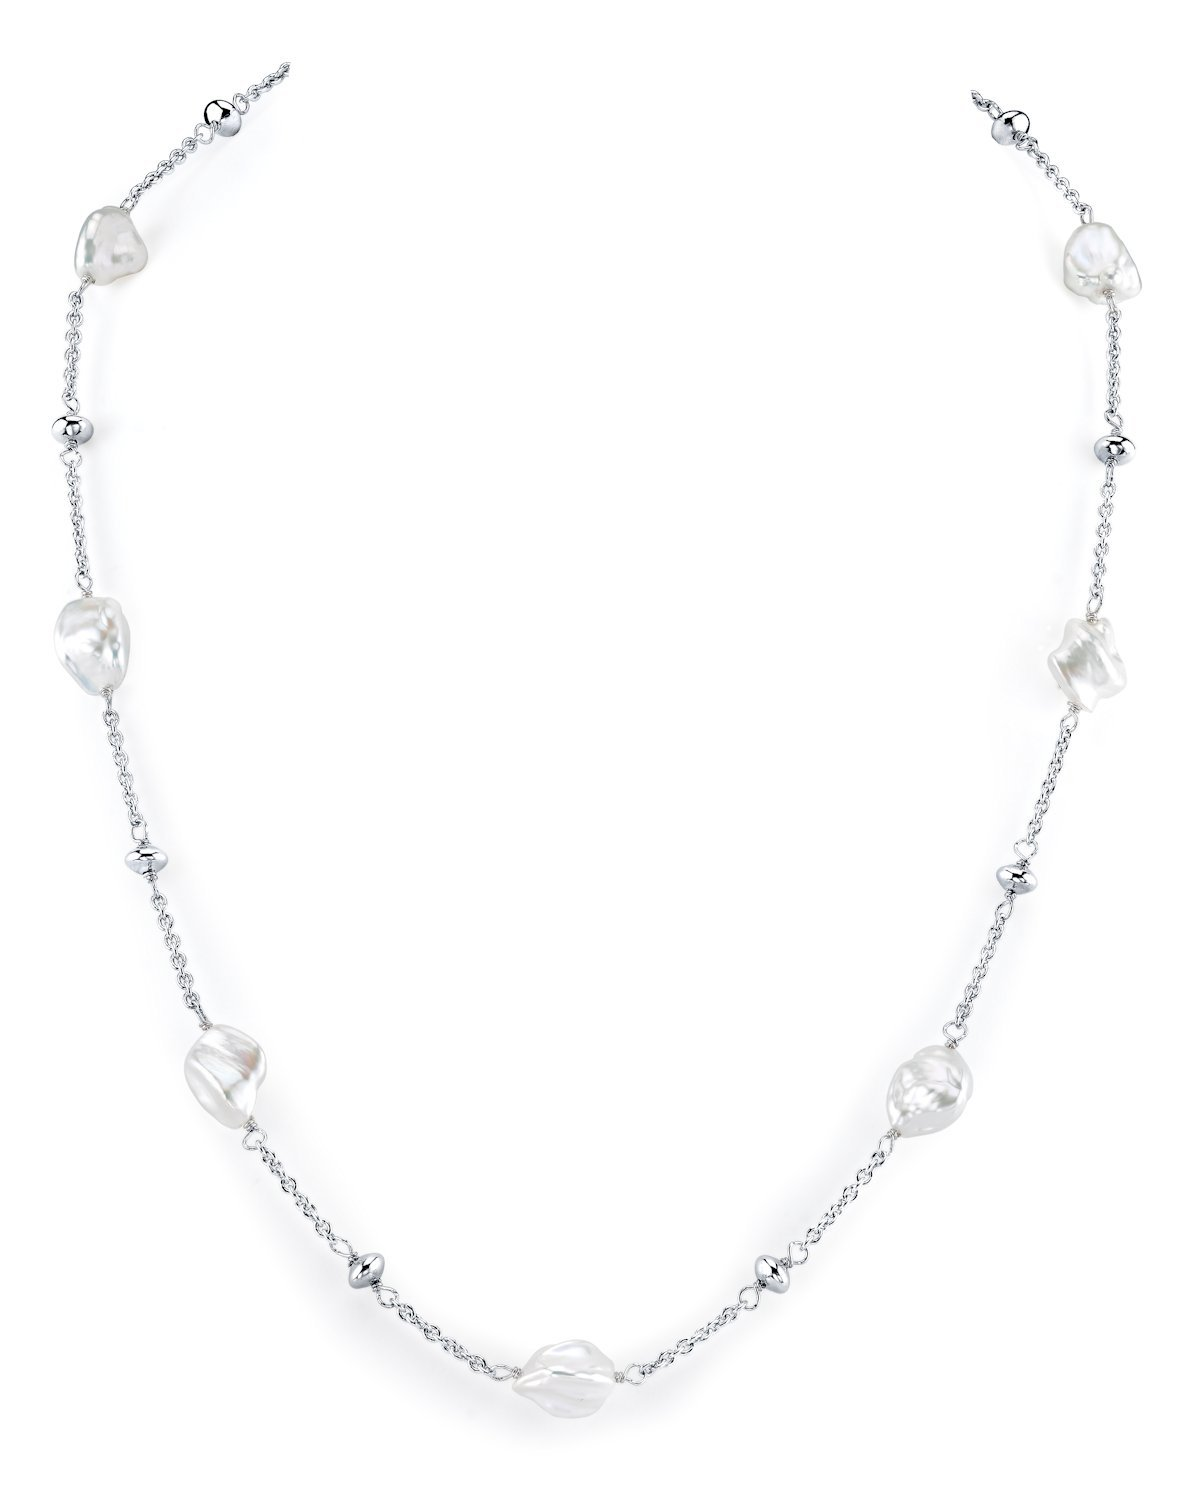 7-8mm Keshi Genuine White Freshwater Cultured Pearl Link Necklace for Women